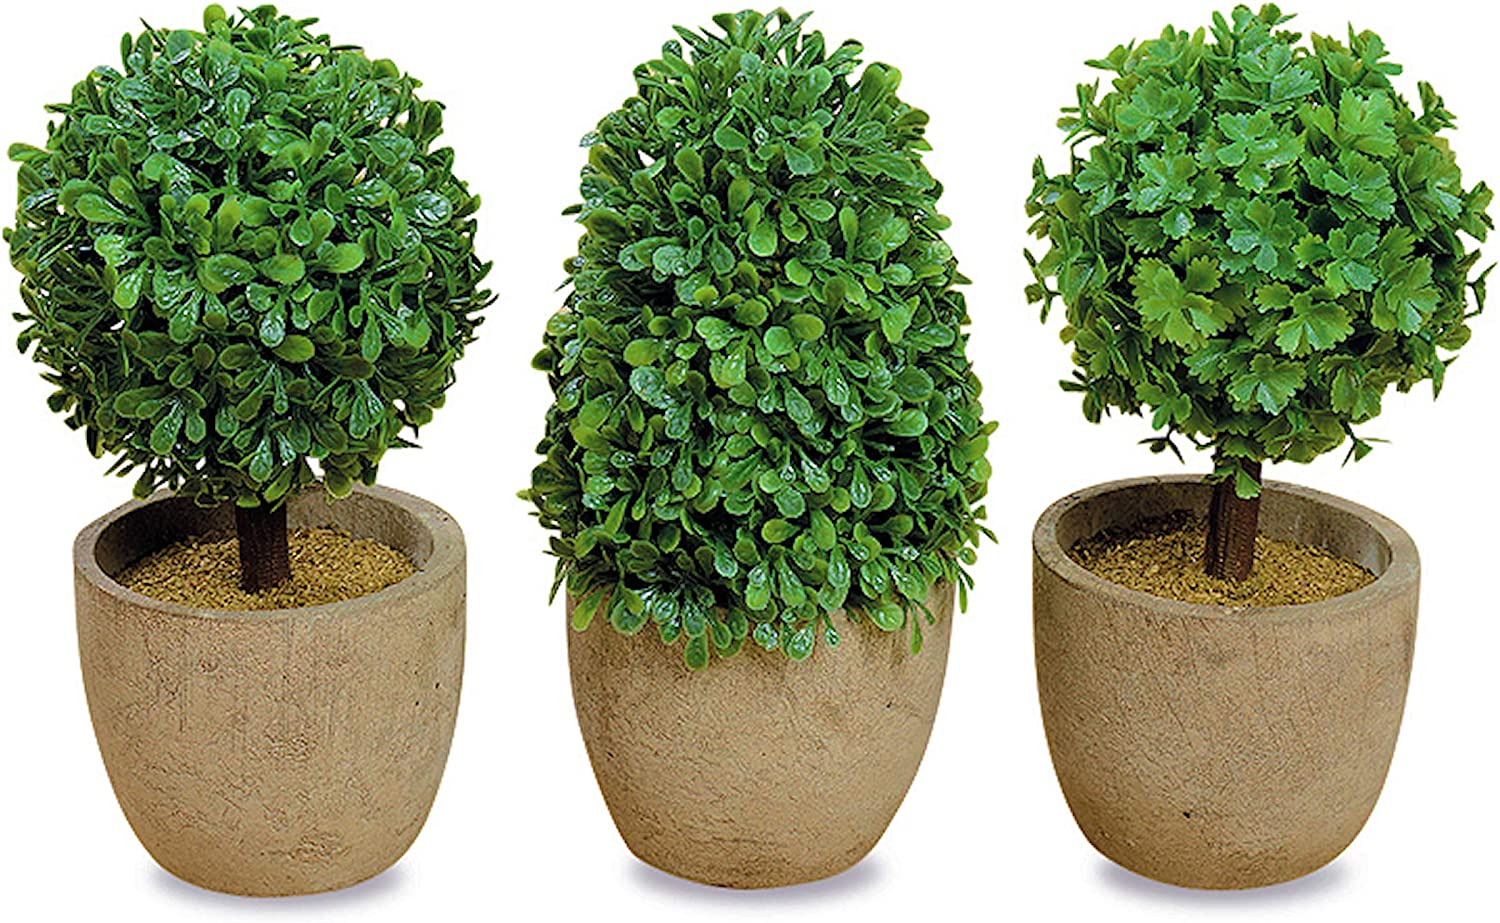 WHW Whole House Worlds Realistic Faux Boxwood Sculptural Topiary, Set of 3, Curly Leaf, Cone and Ball Tops, Gray Stone Pot, Each 5.5 Inches Tall, Mixed Materials